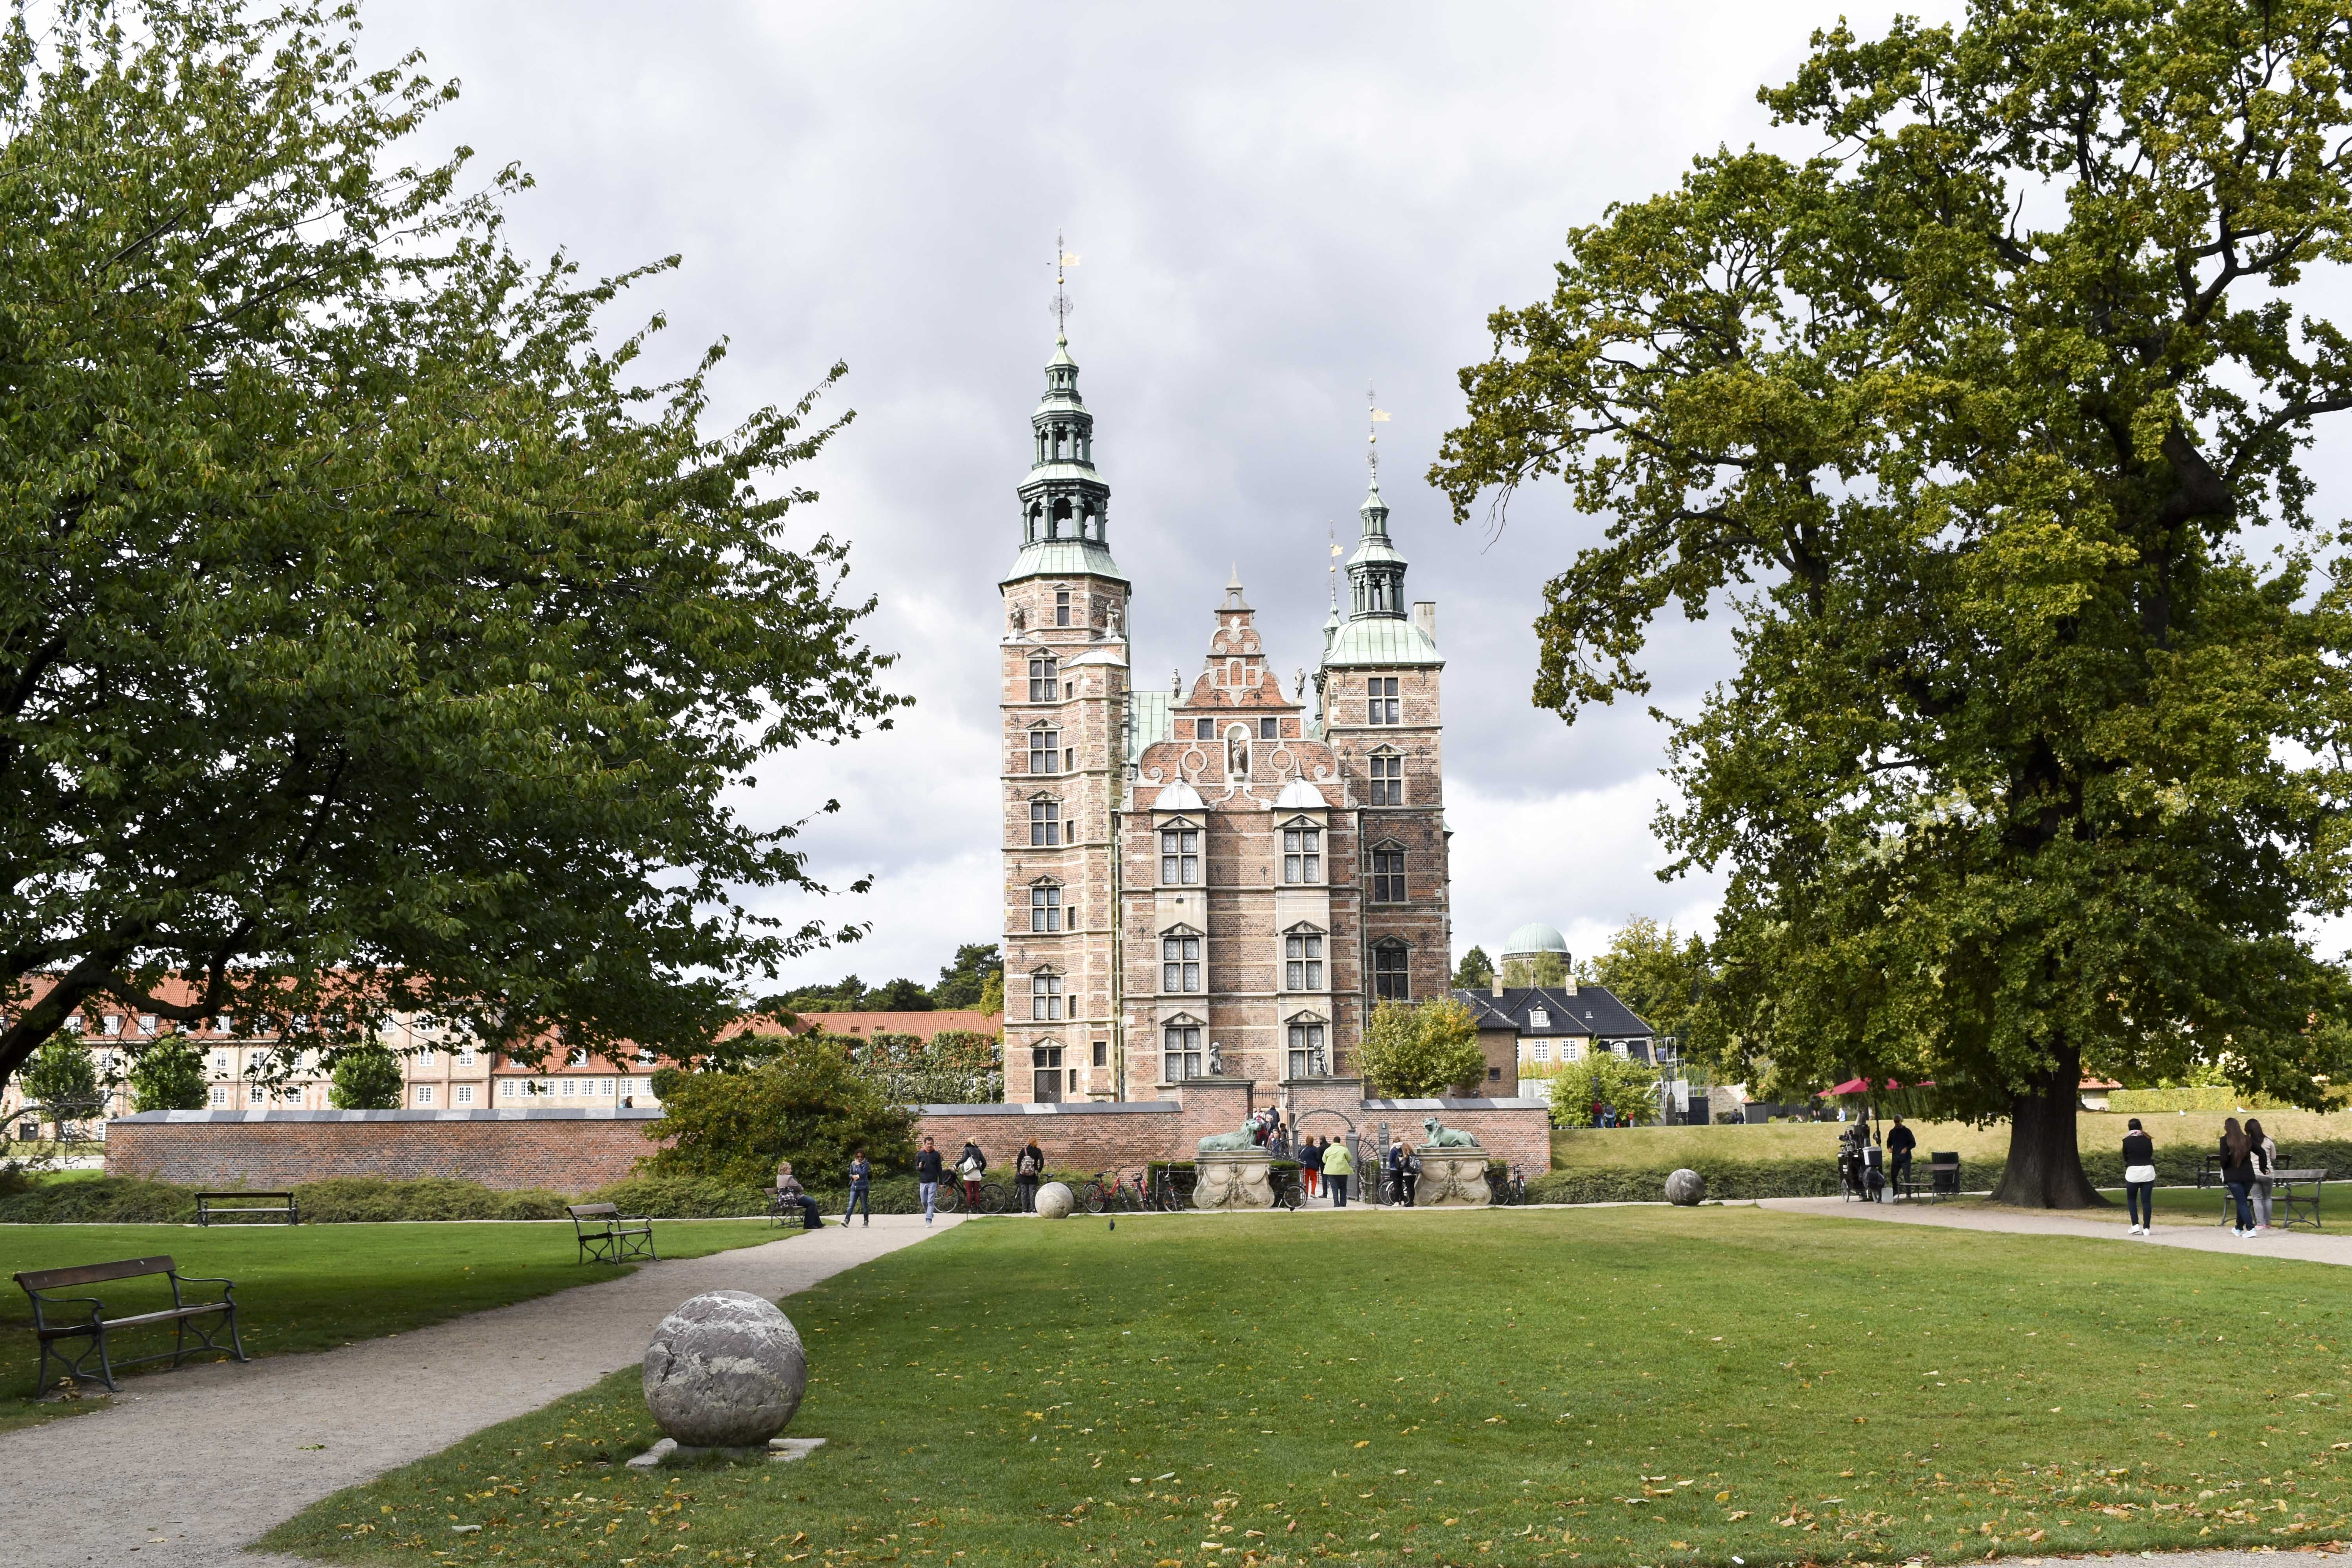 Copenhagen Travel Guide | Visit Copenhagen including where to stay, what to eat and how to get around. Especially helpful for those on a budget!